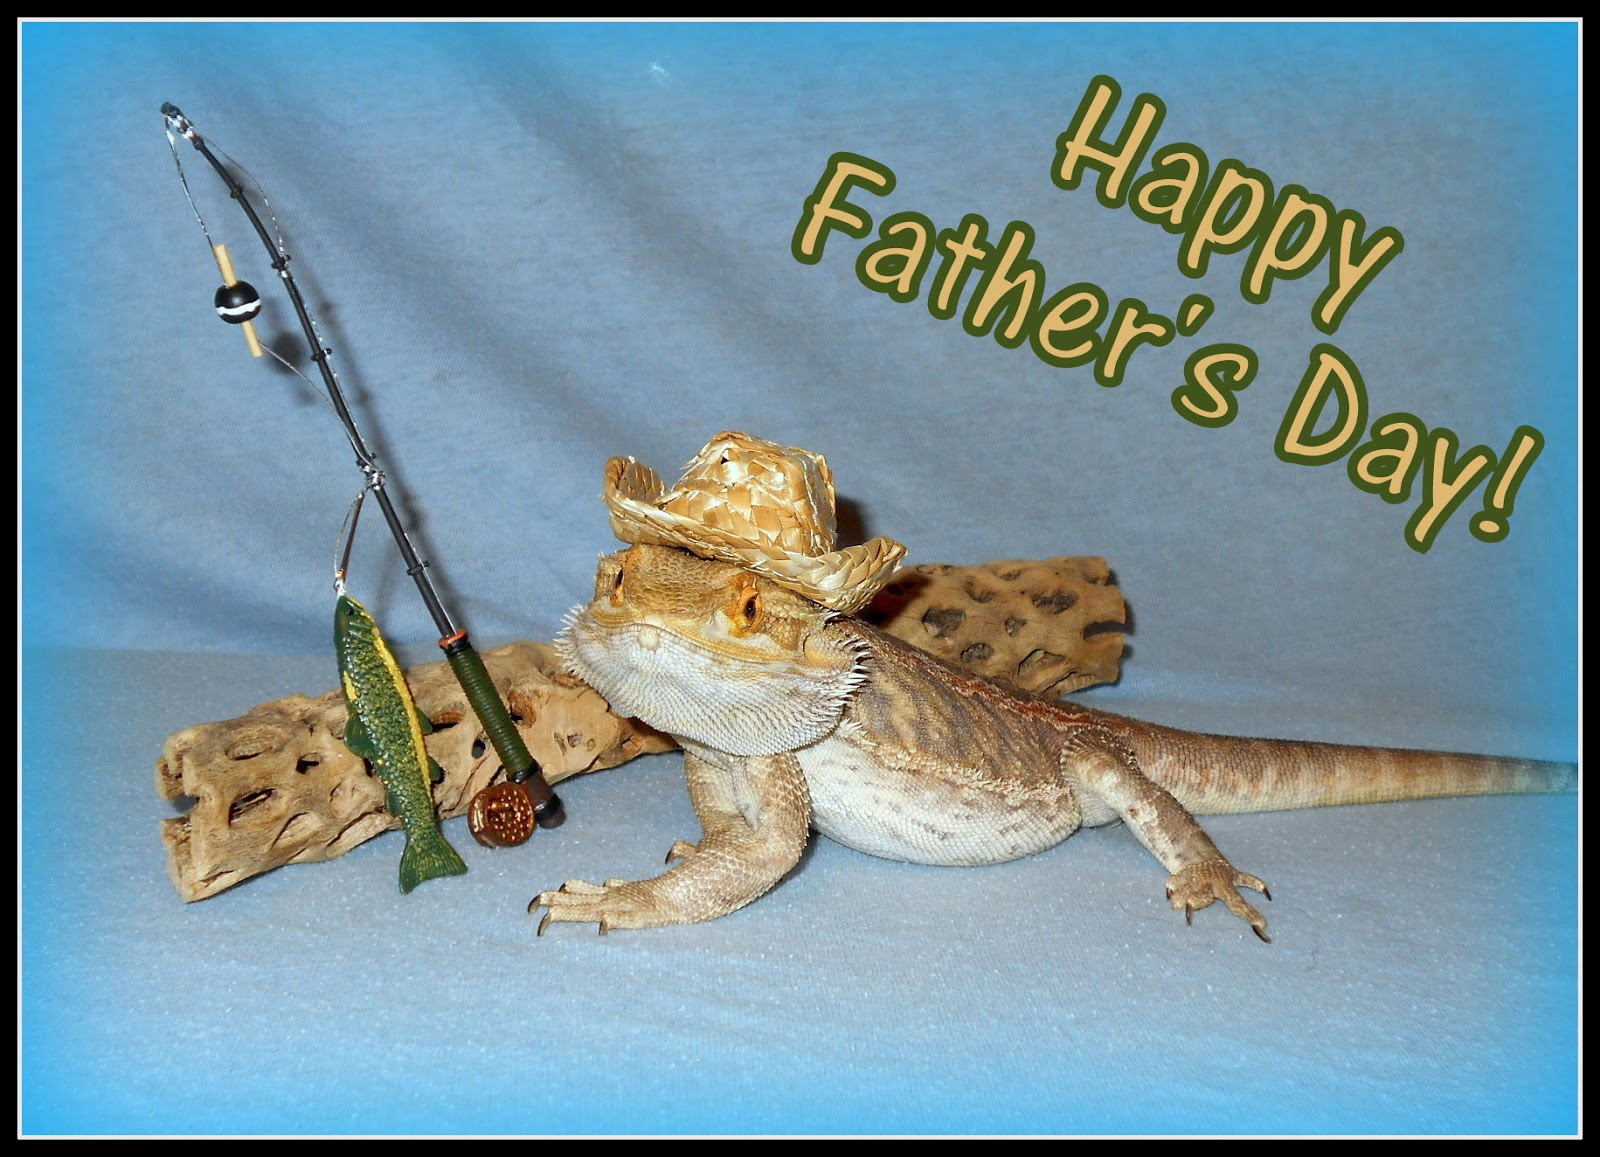 Kelleys dog blog happy fathers day he has he lovingly guided two boys into manhood he has also loved numerous dogs cats birds ferrets rodents and reptiles over the past sciox Gallery